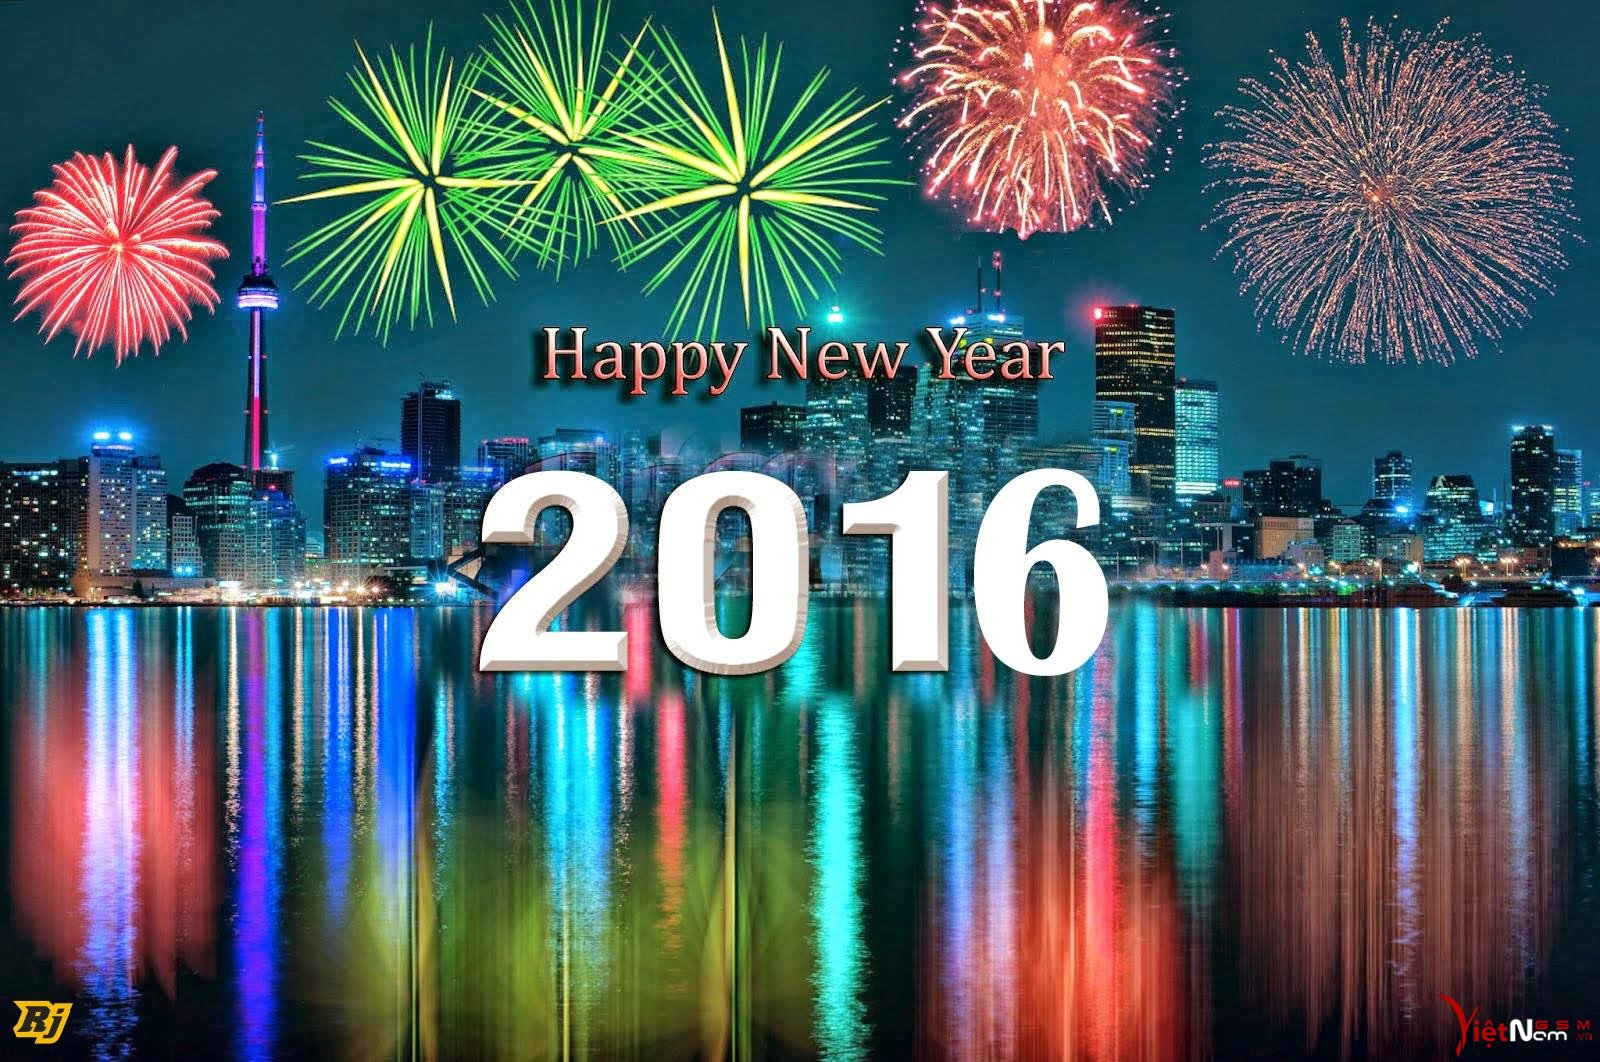 Happy-New-Year-2016-hd-wallpaper.jpg